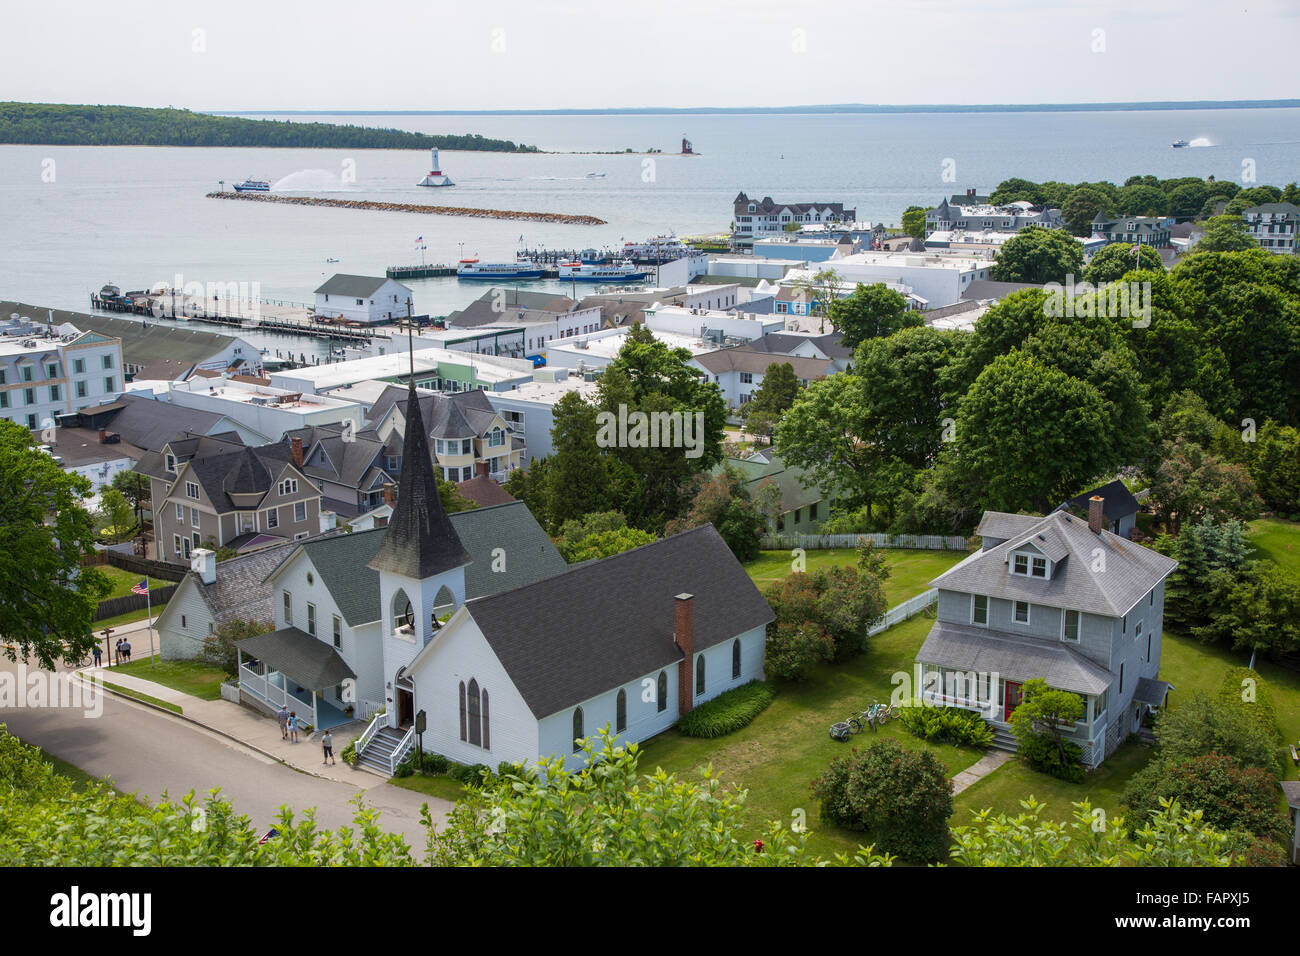 View from Fort Mackinac of church and downtown on resort island of Mackinac Island in Michigan - Stock Image